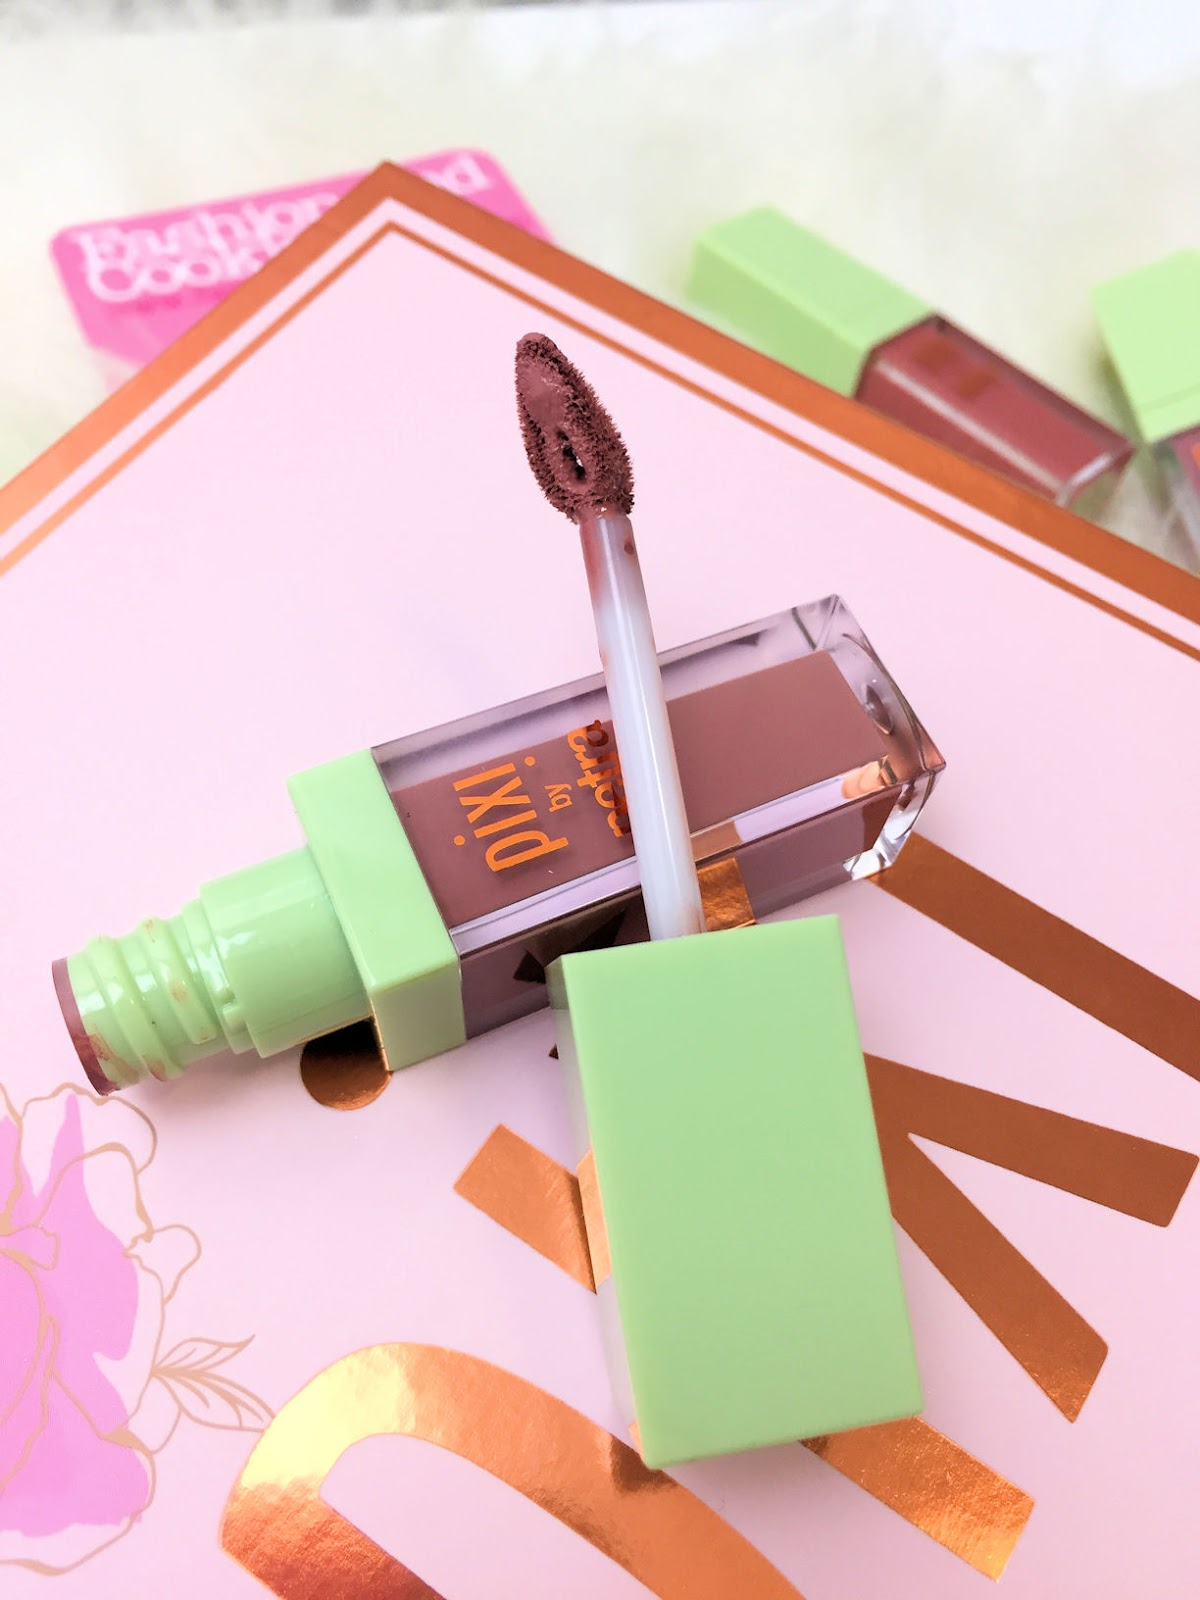 PIXI Beauty MatteLast Liquid Lip review on Fashion and Cookies beauty blog, beauty blogger